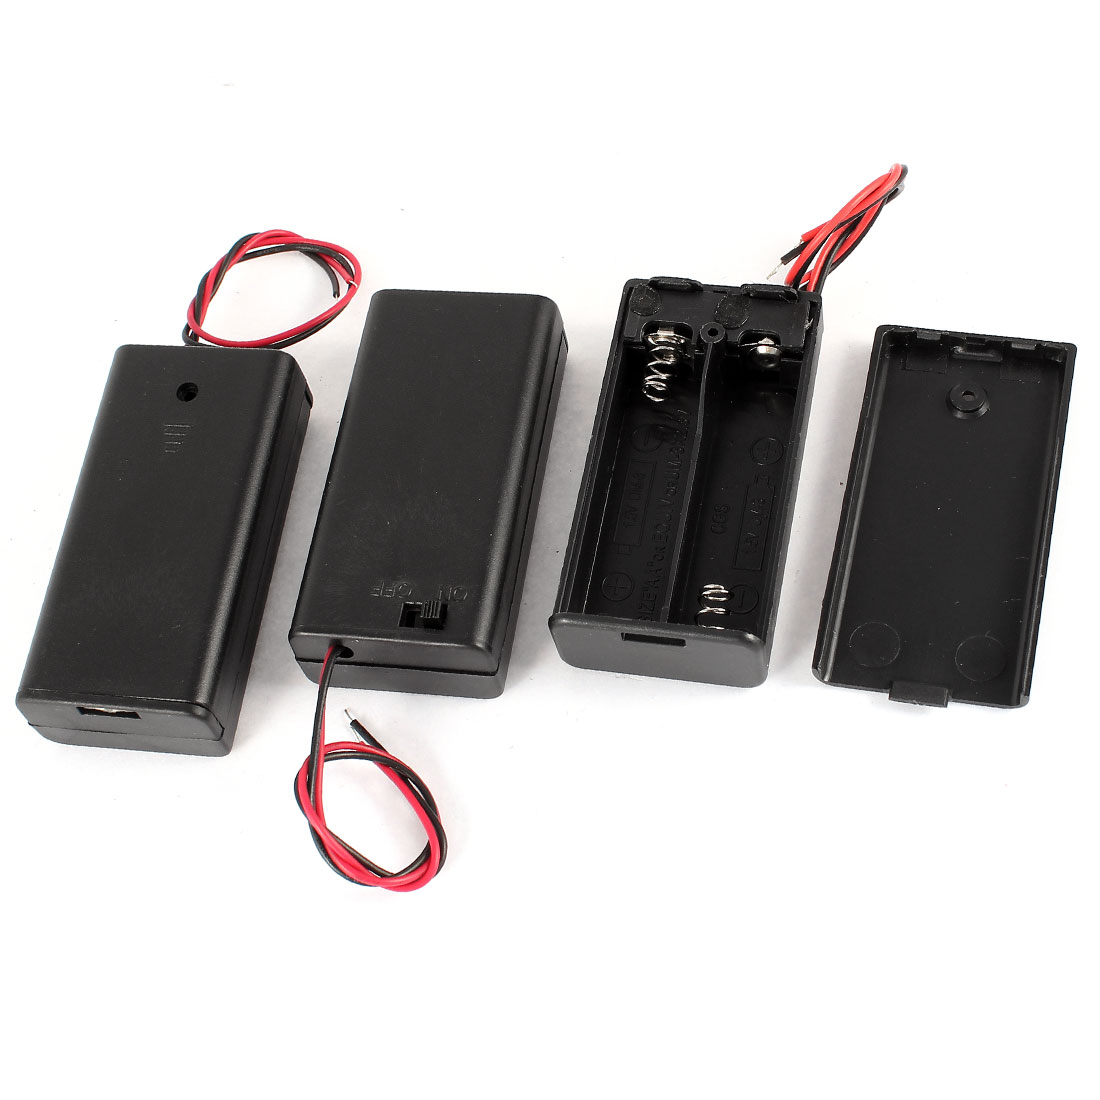 3 Pcs Black Rectangle Plastic Shell Holders Case for 2 x 1.5V AA Battery